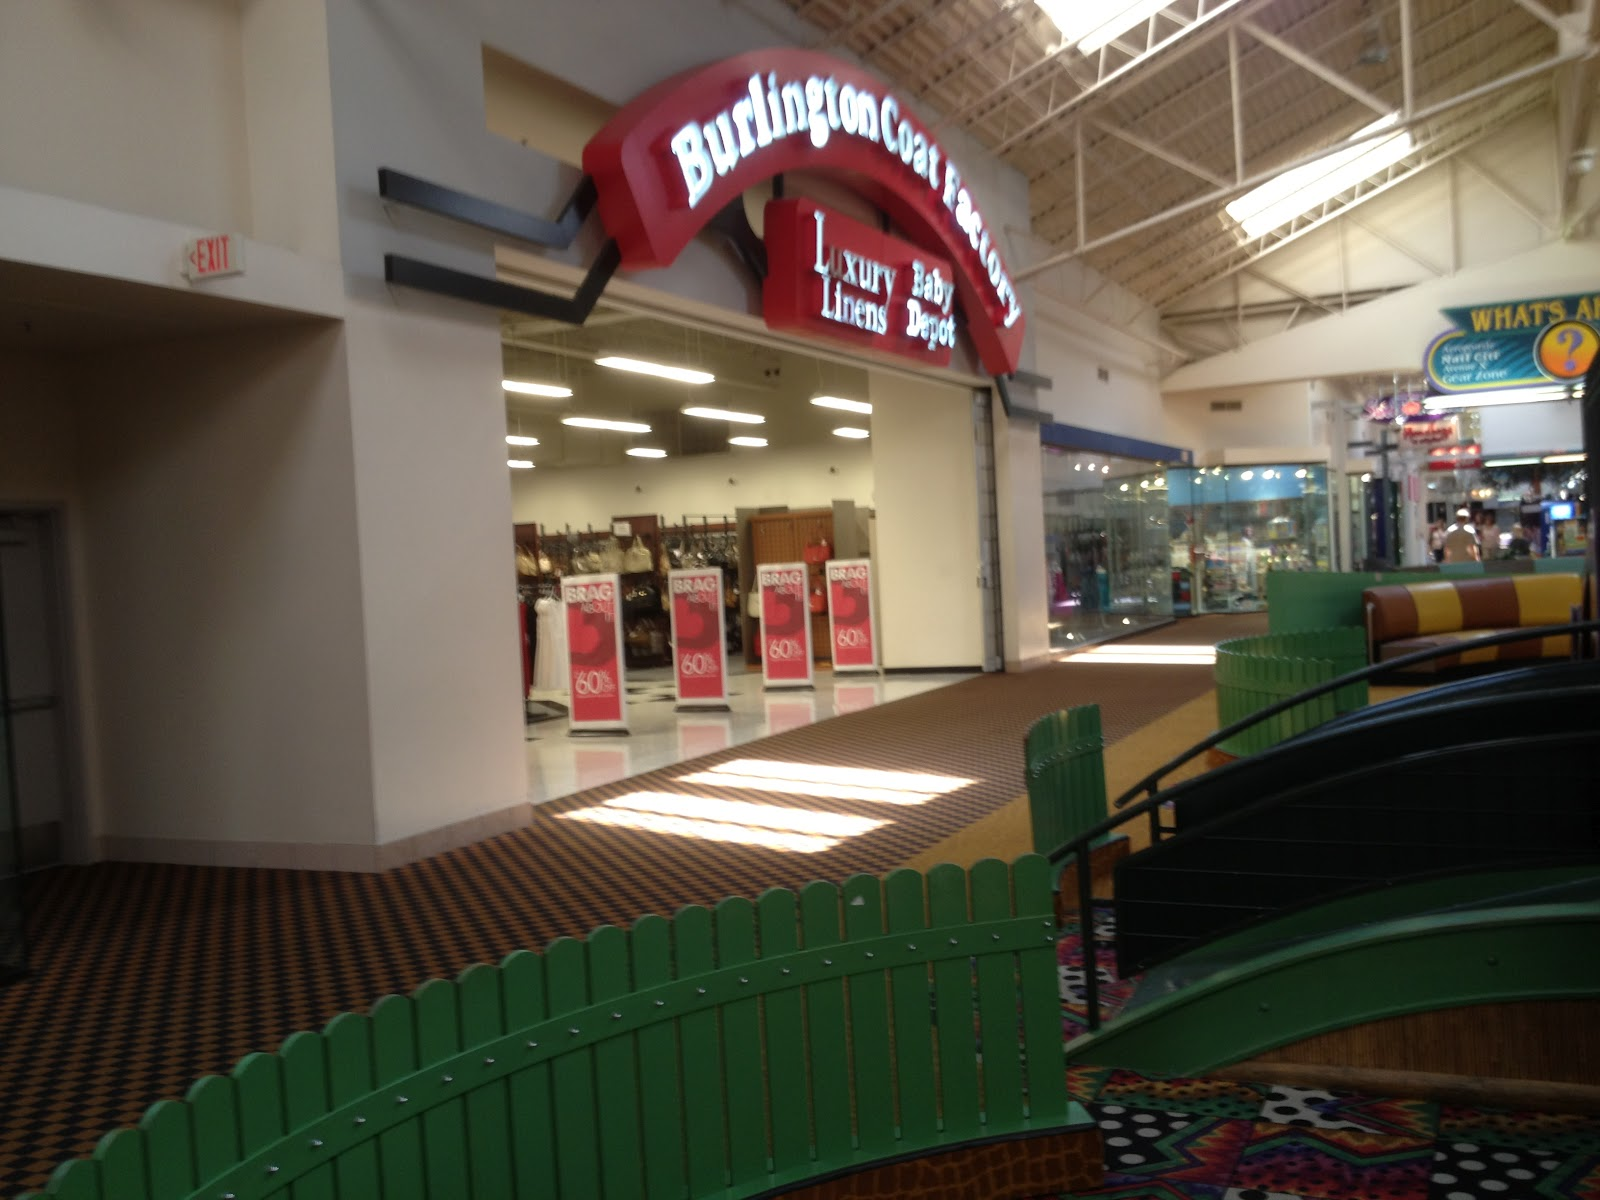 The Burlington Coat Factory mall entrance